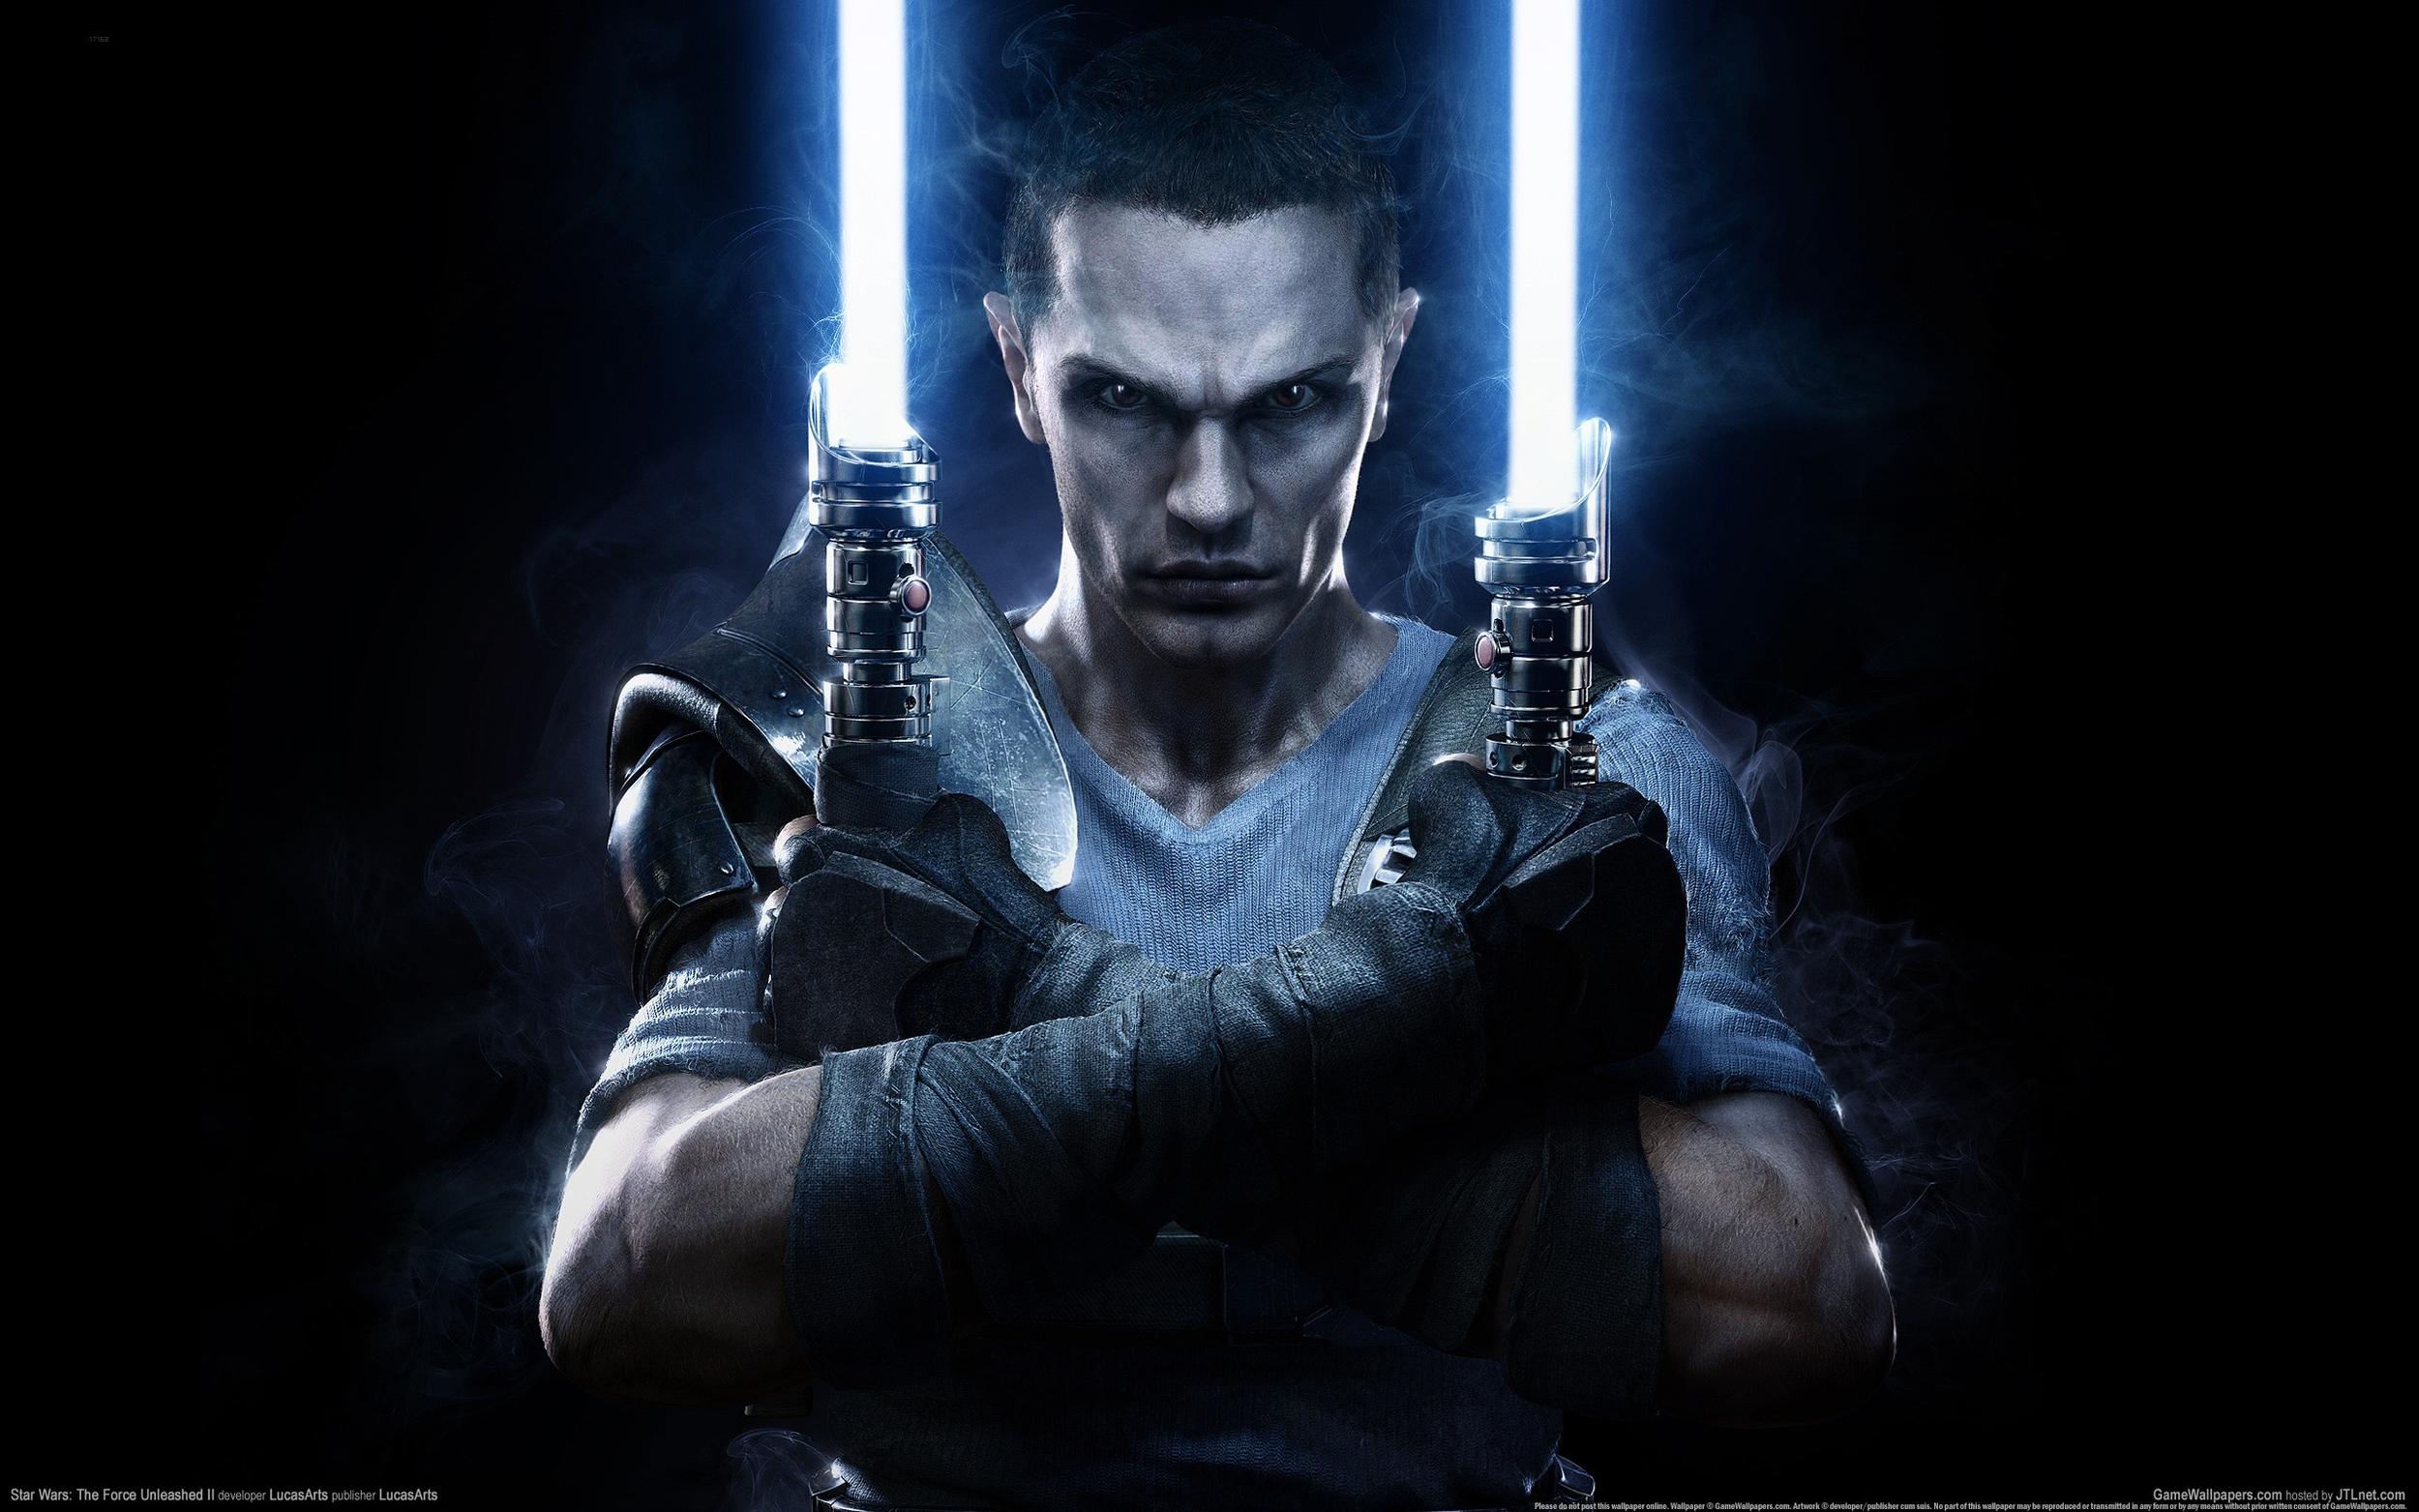 Star-Wars-The-Force-Unleashed-2-Wii.jpg